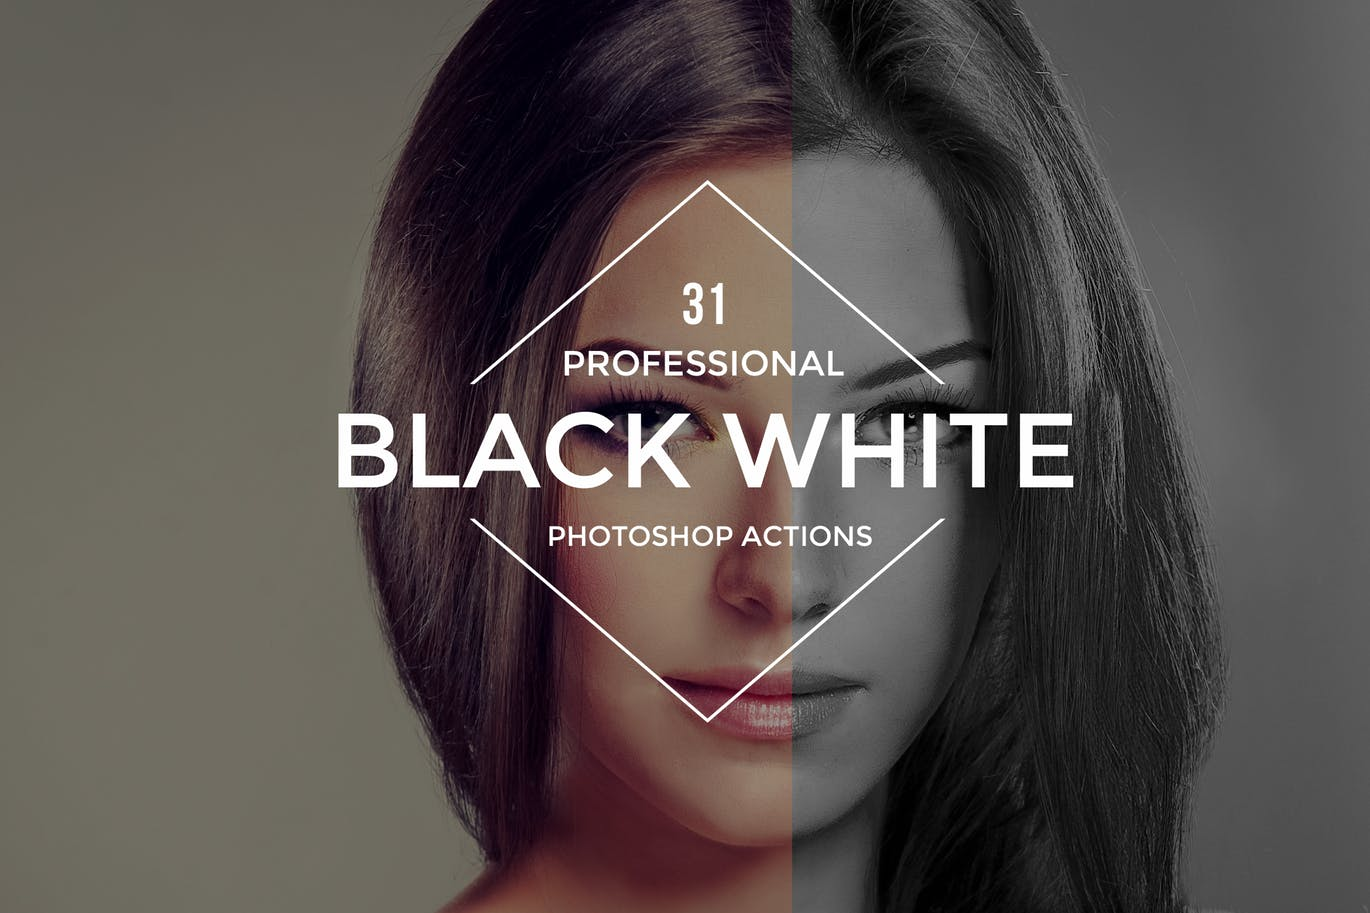 133befd42b1b314e8bdb48fb52e35f48-1 50+ Best Photoshop Actions of 2019 design tips  Adobe Photoshop Actions